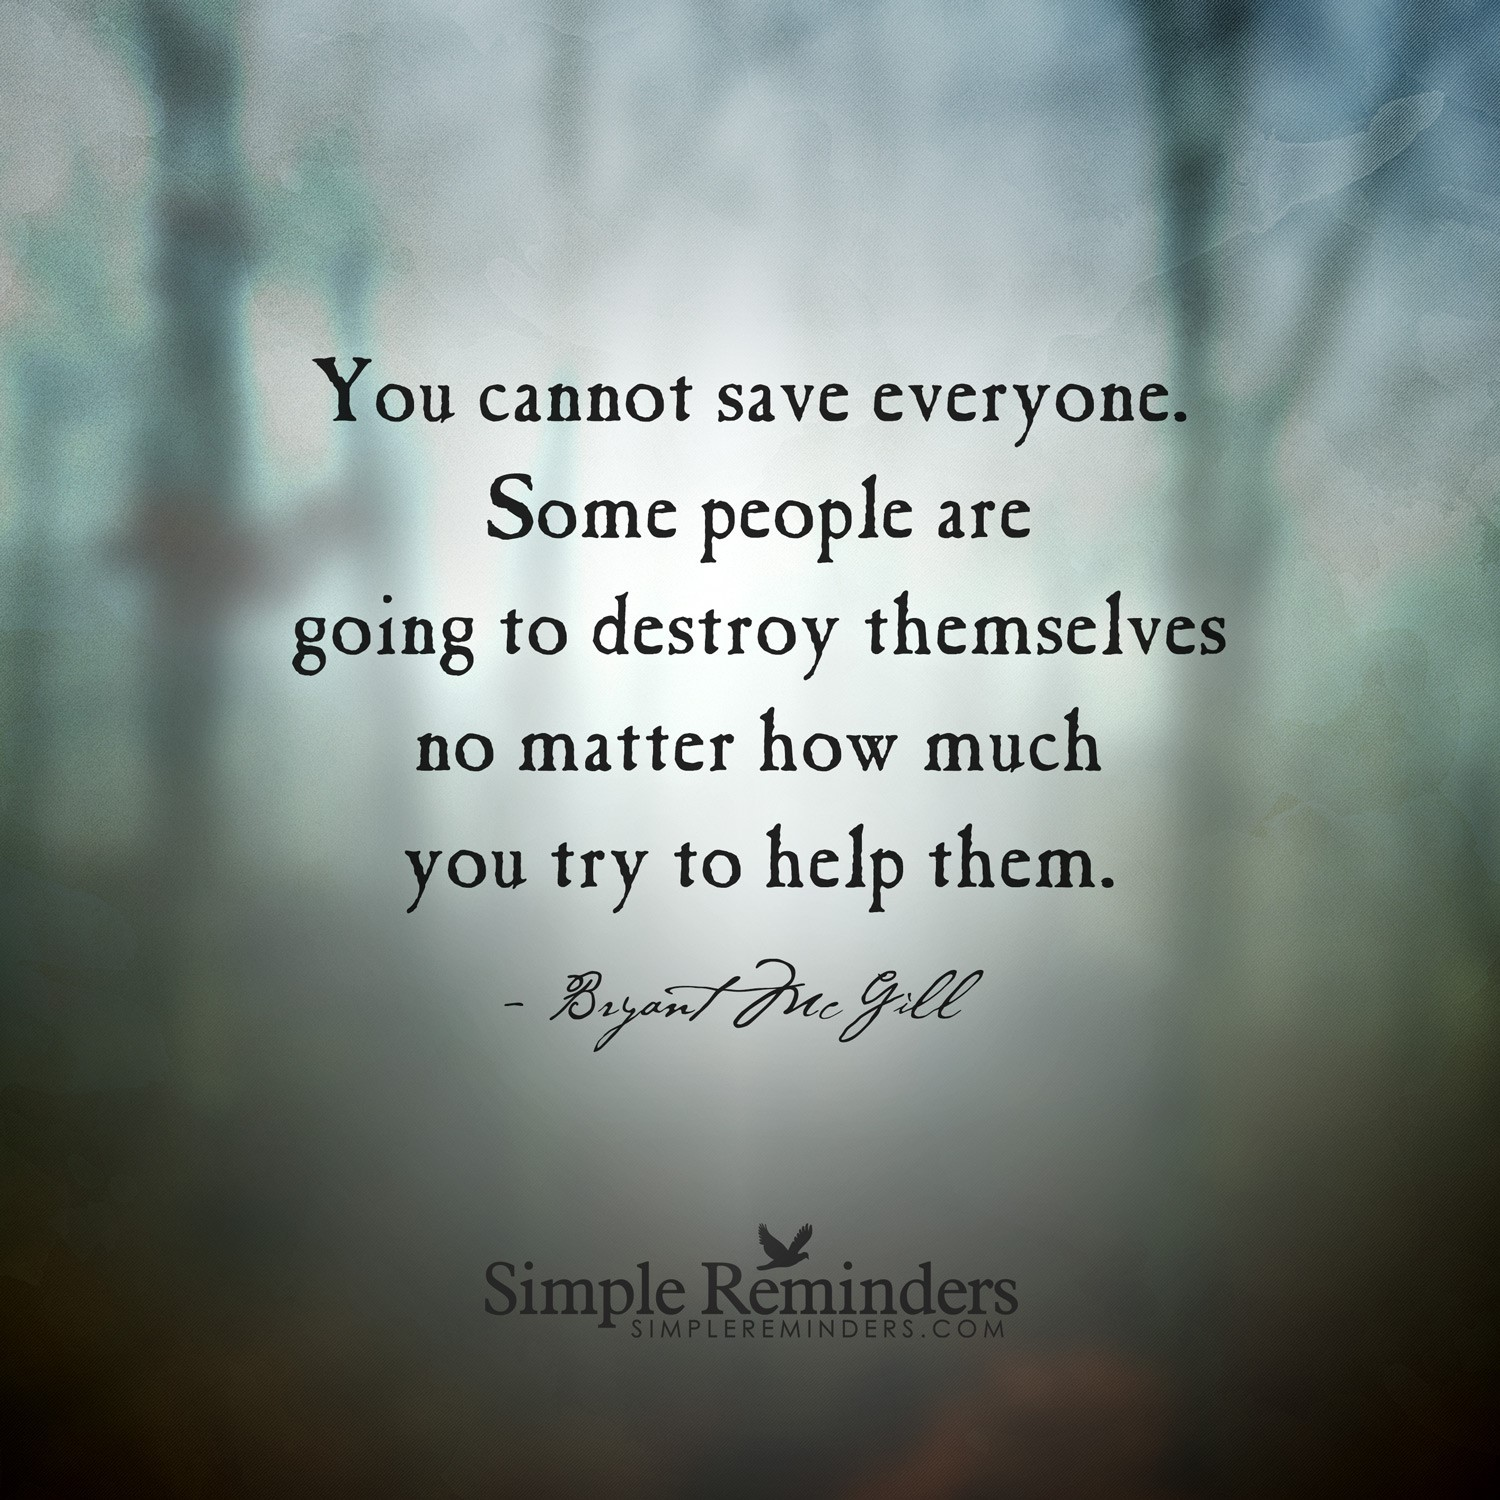 you cannot save everyone, some people are going to destroy themselves no matter how much you try to help them